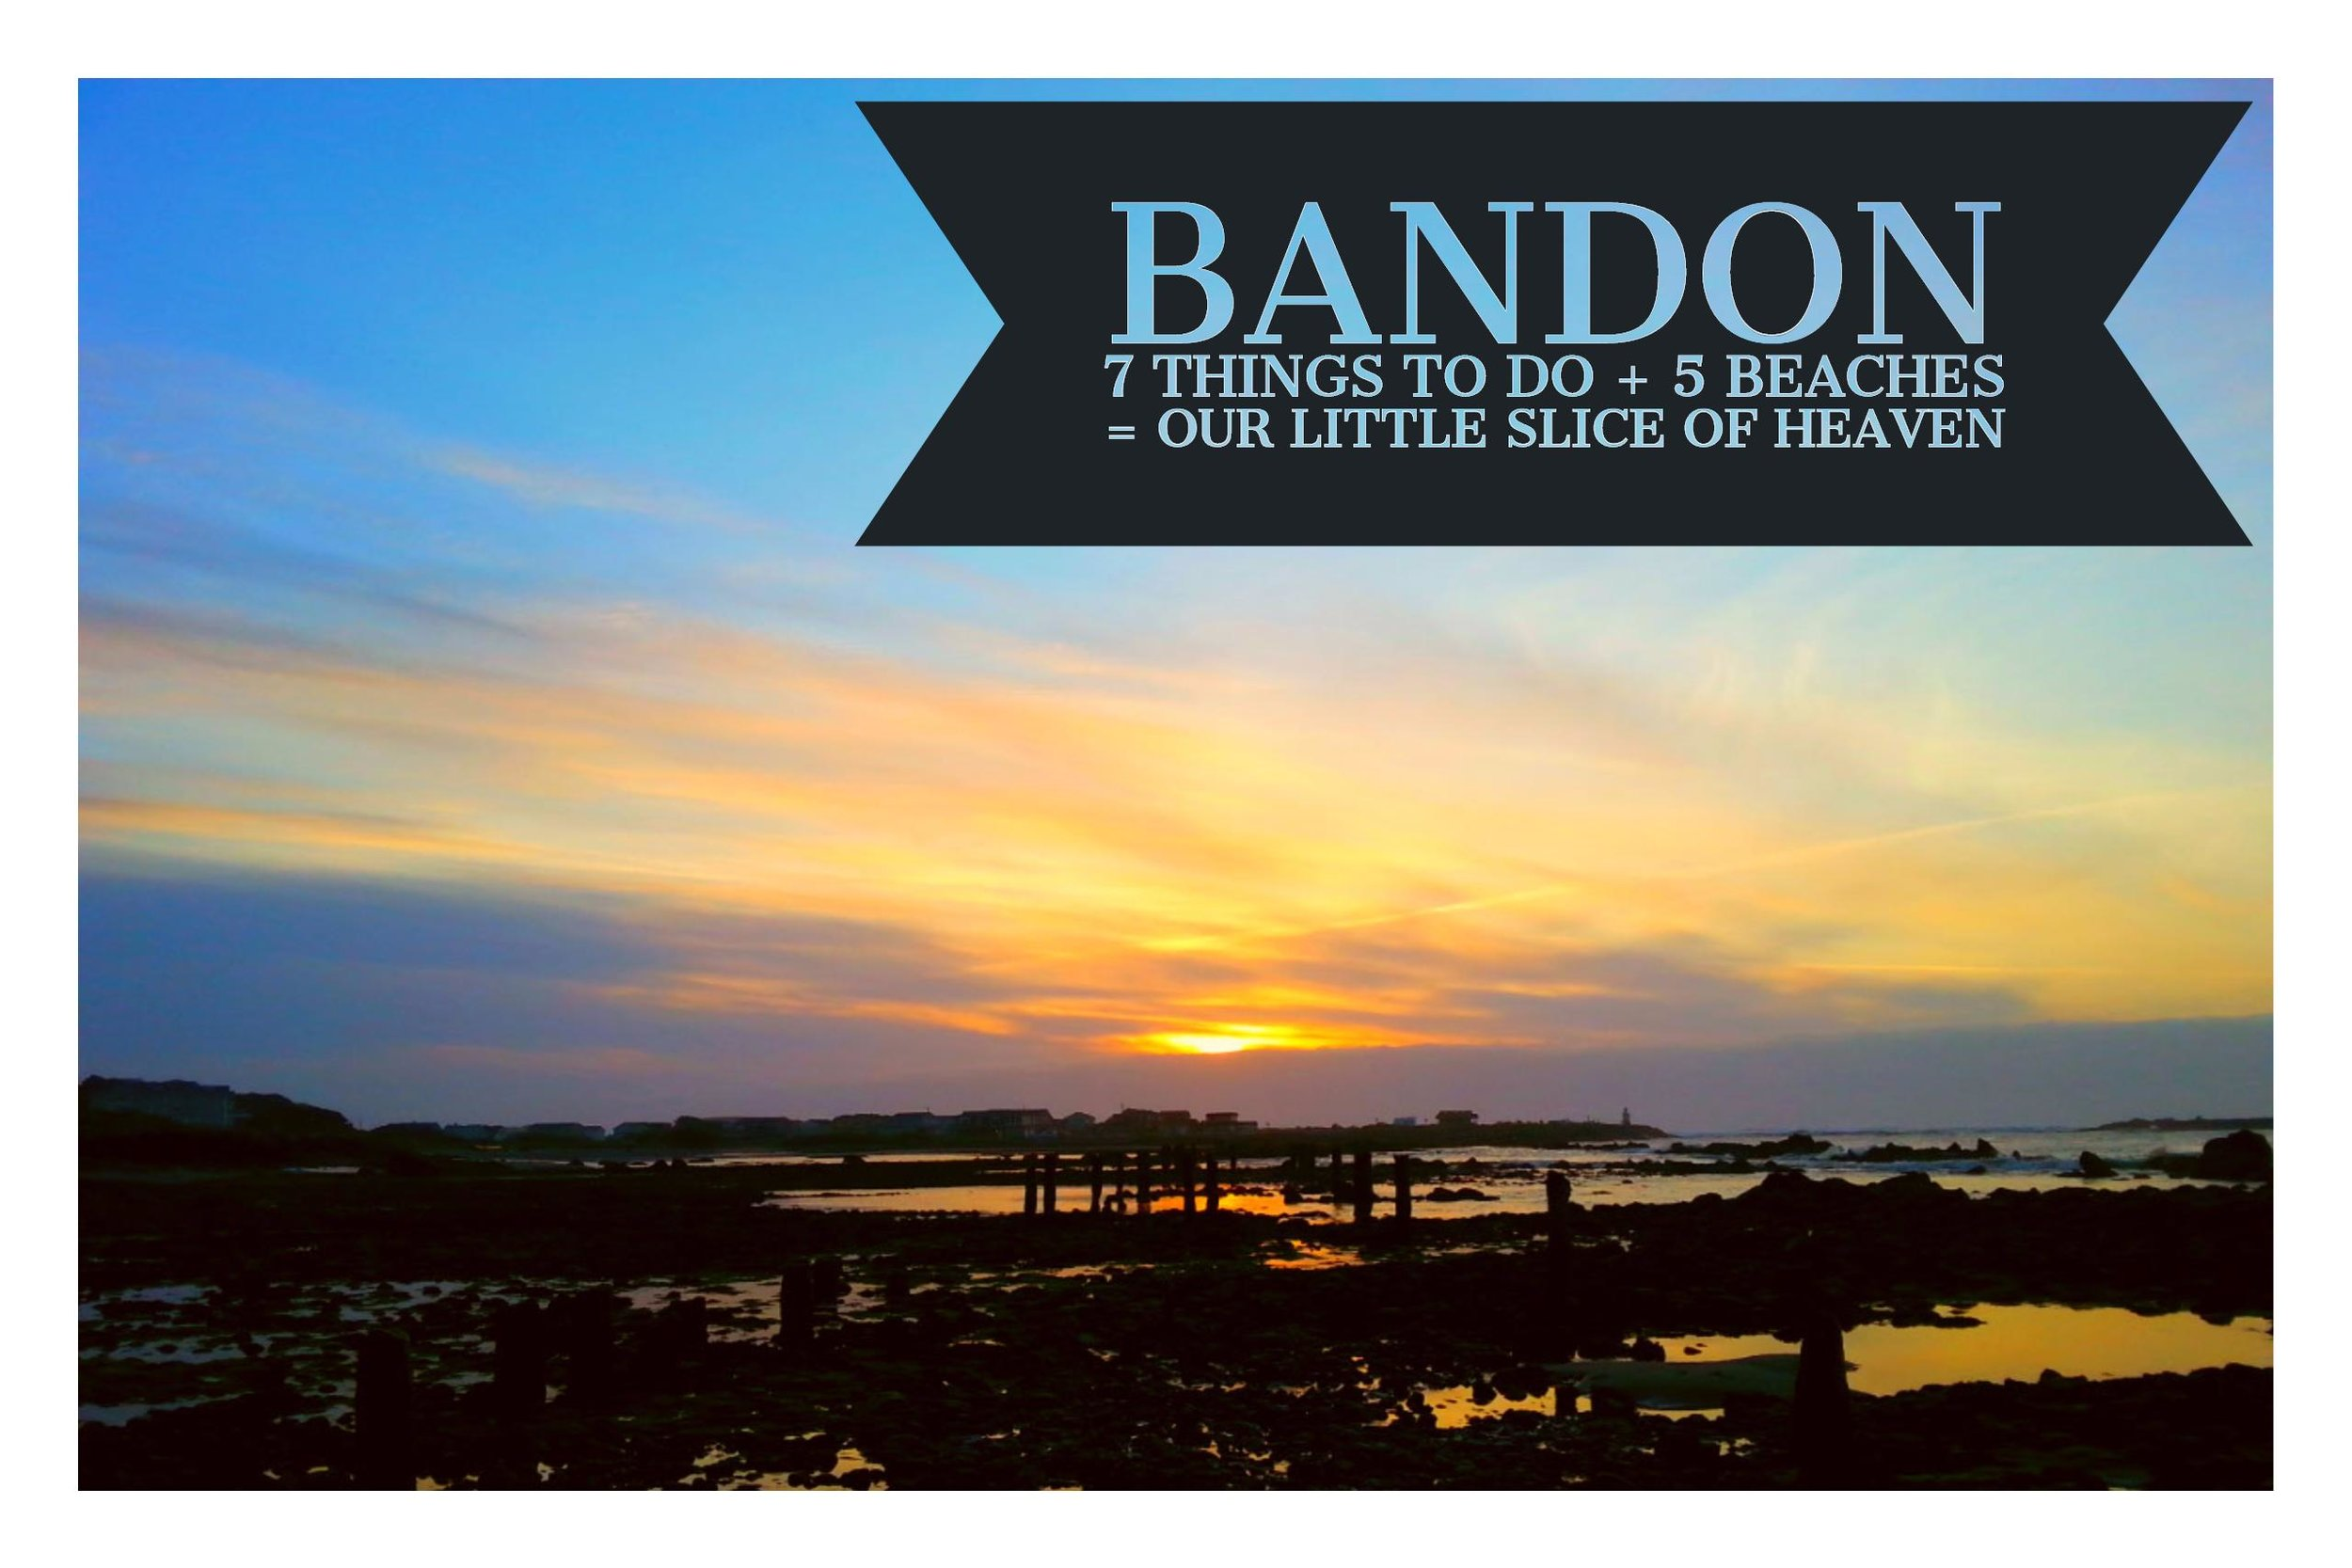 BANDON - 7 THINGS TO DO + 5 BEACHES TO VISIT = OUR LITTLE SLICE OF HEAVEN